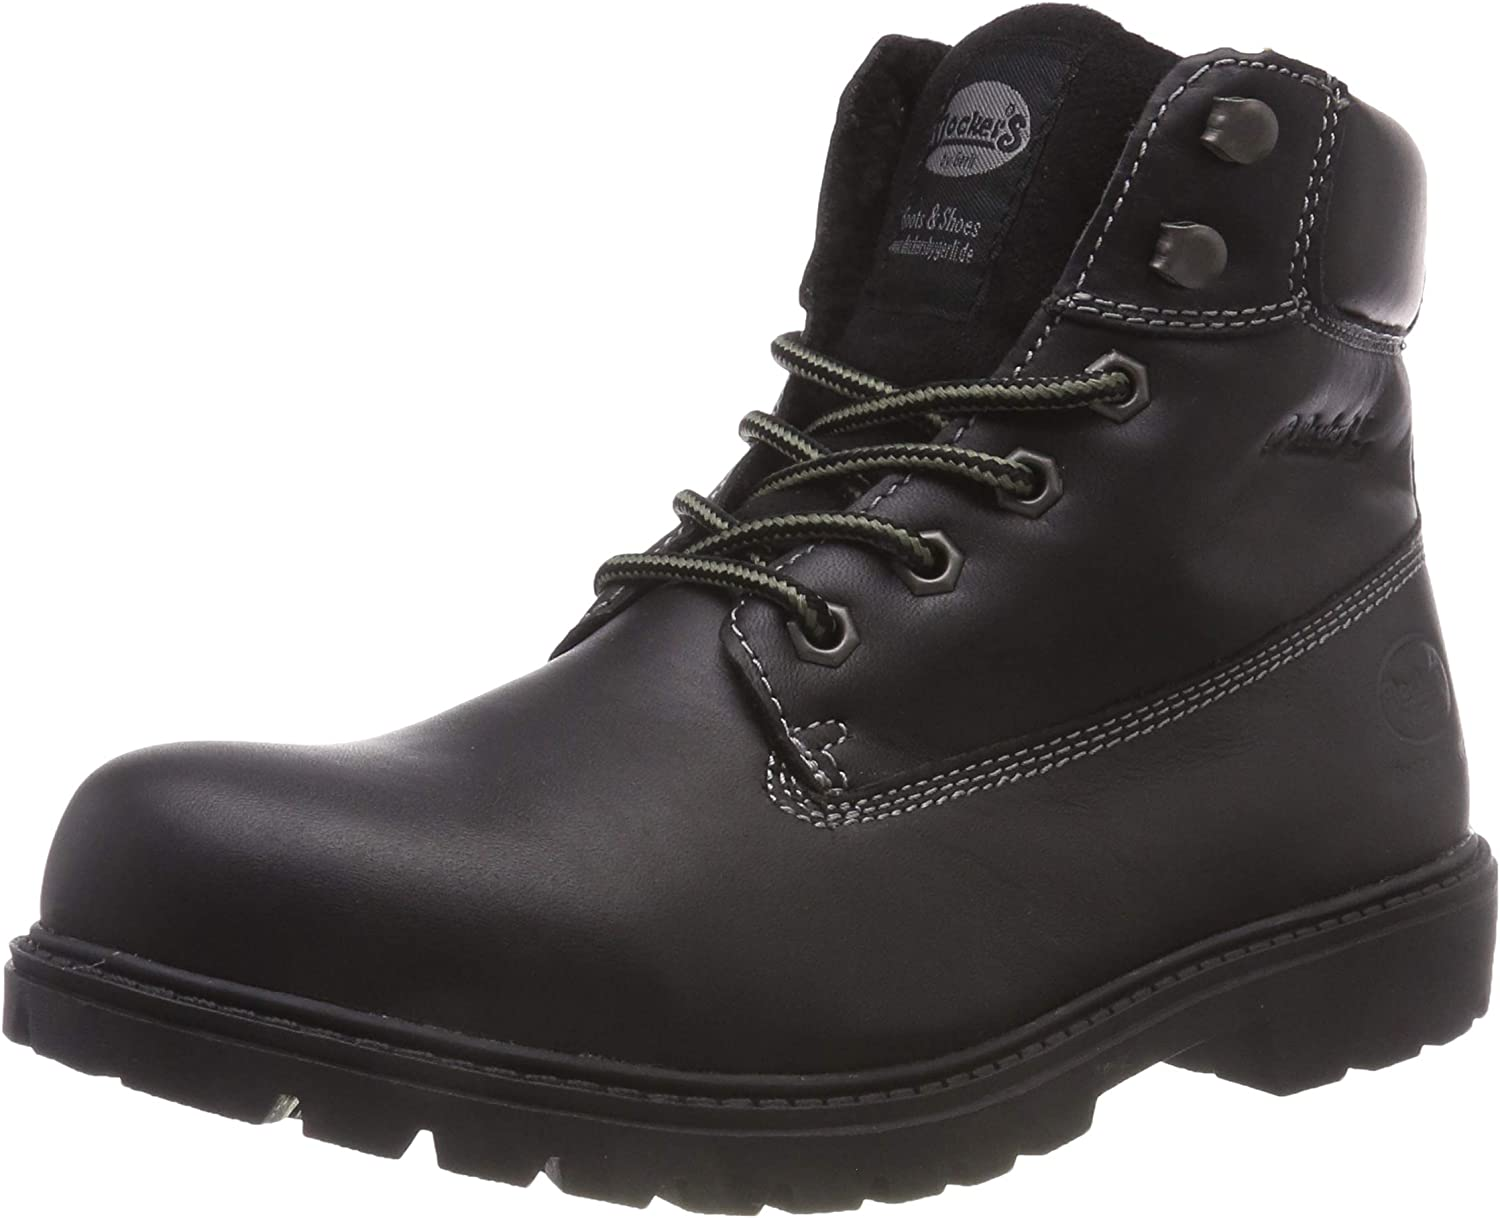 Dockers by Gerli Men's 19pa140 Combat Boots